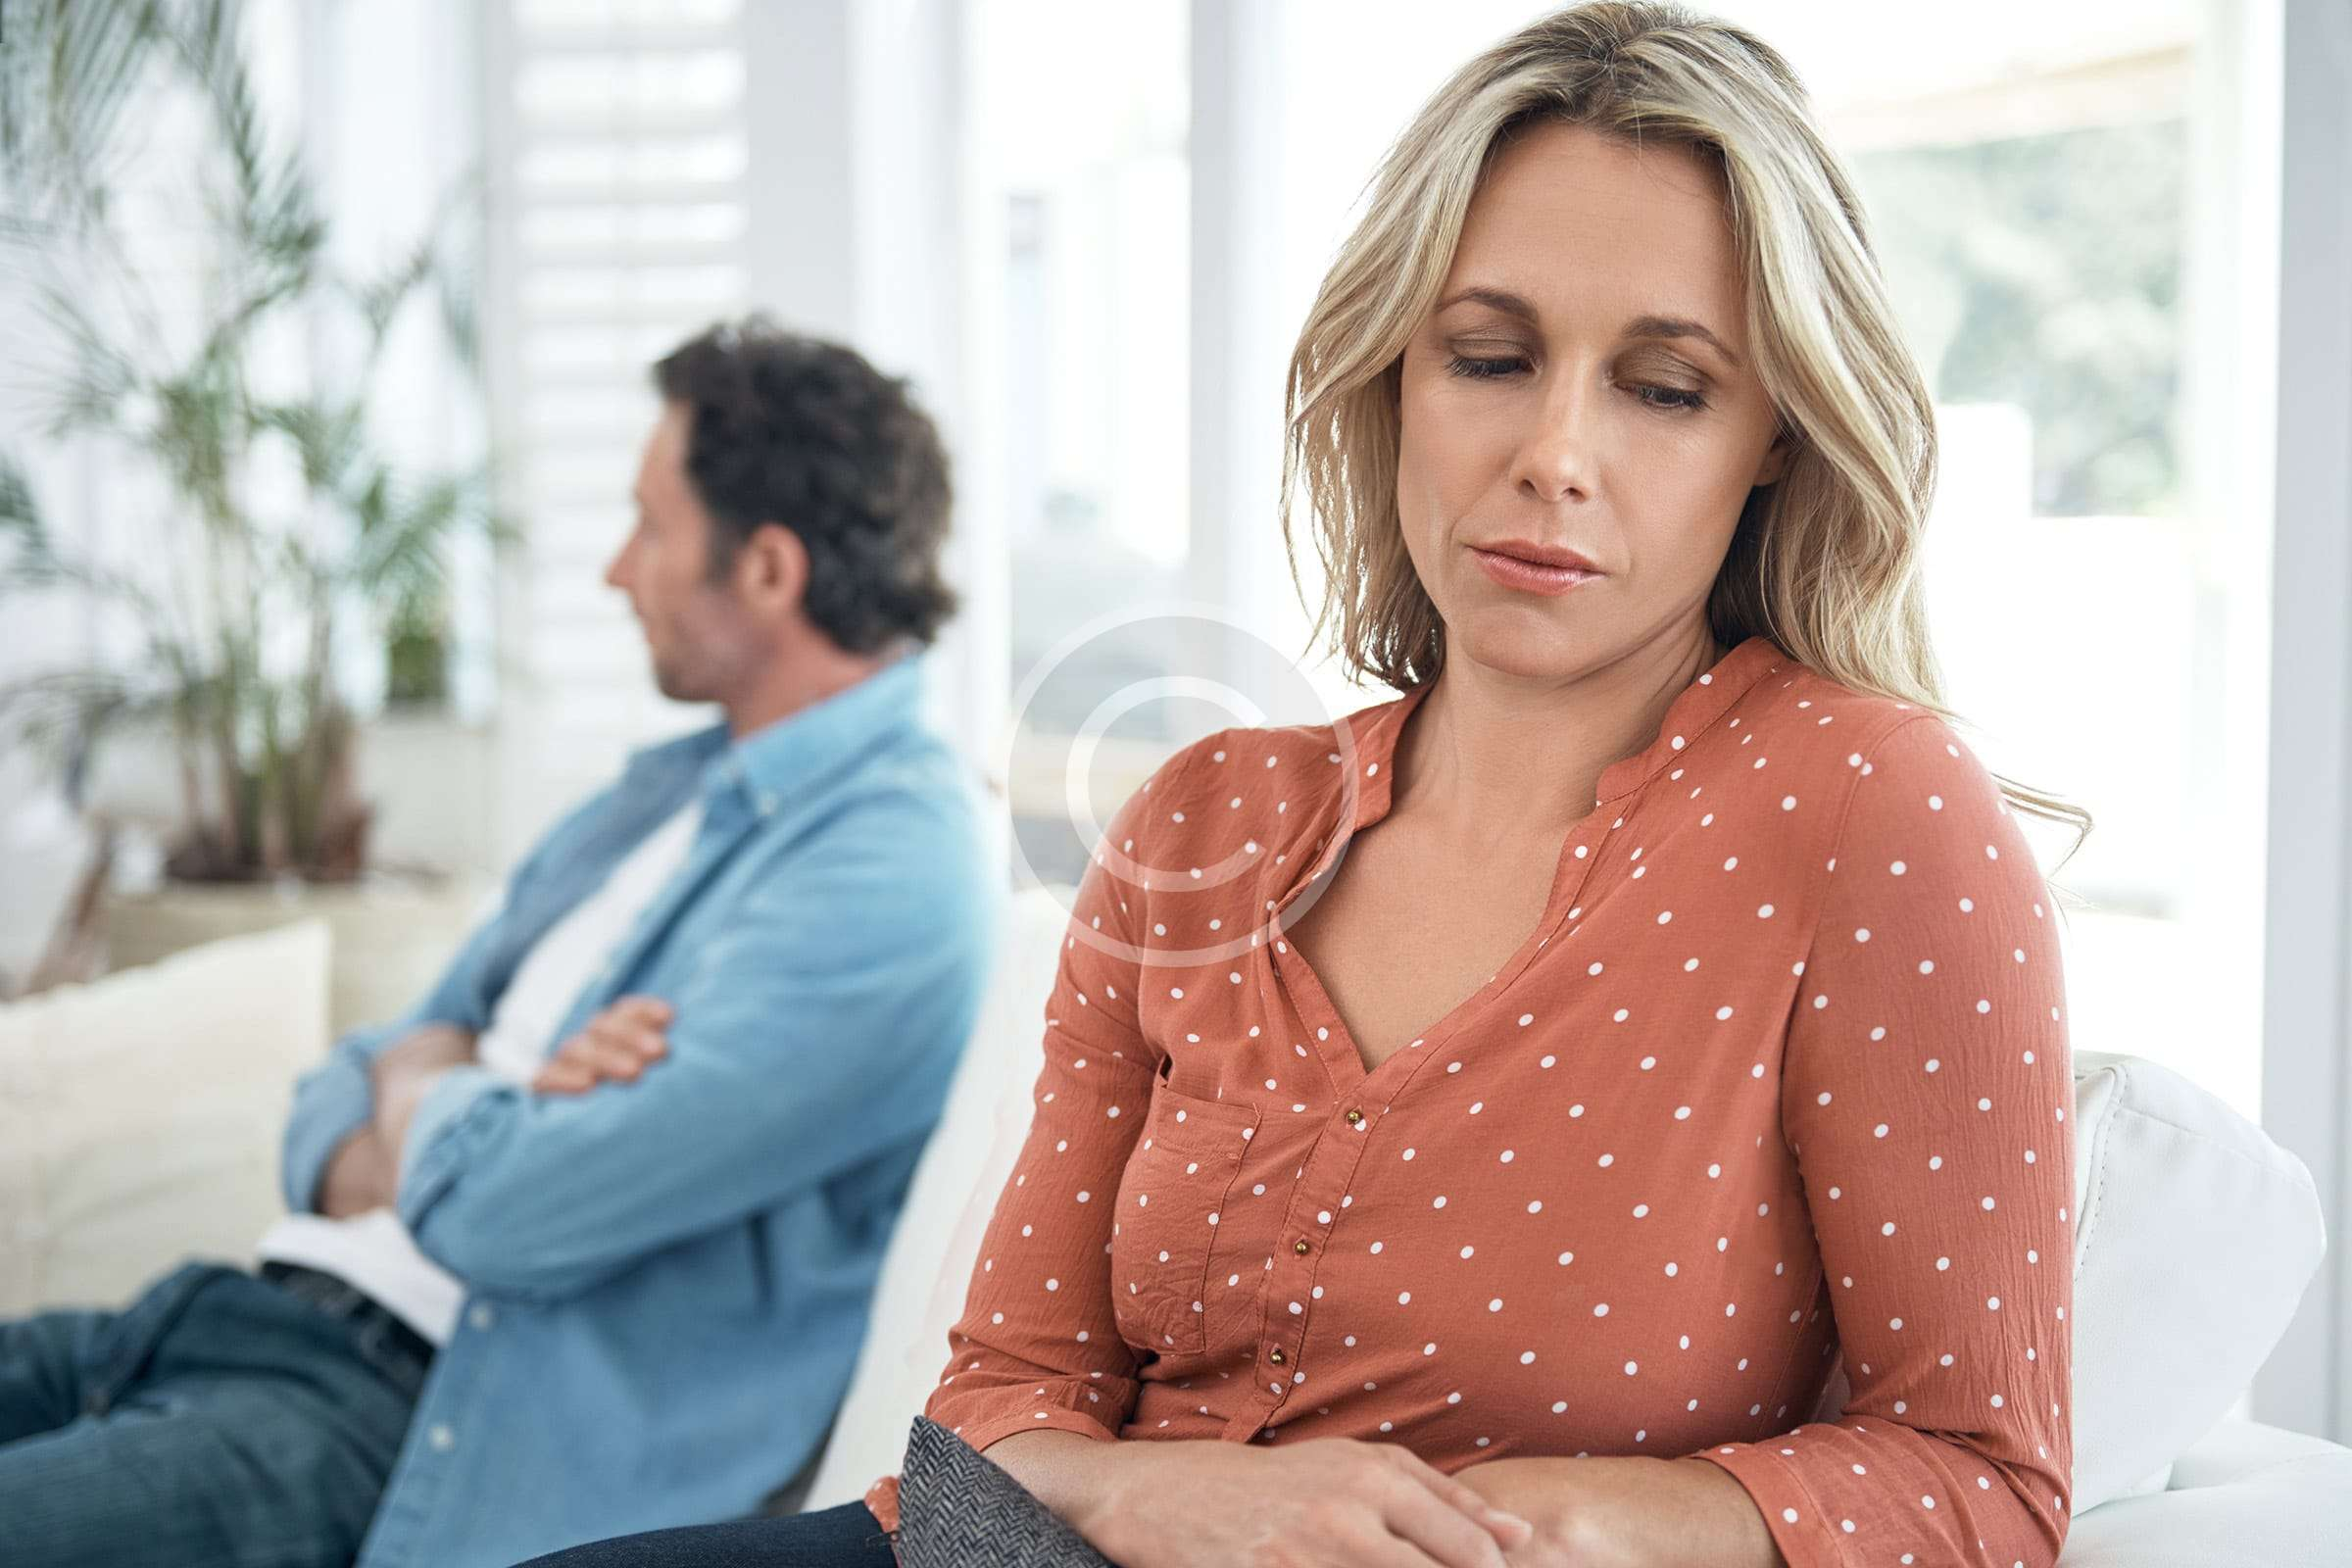 How can therapy help our couple?